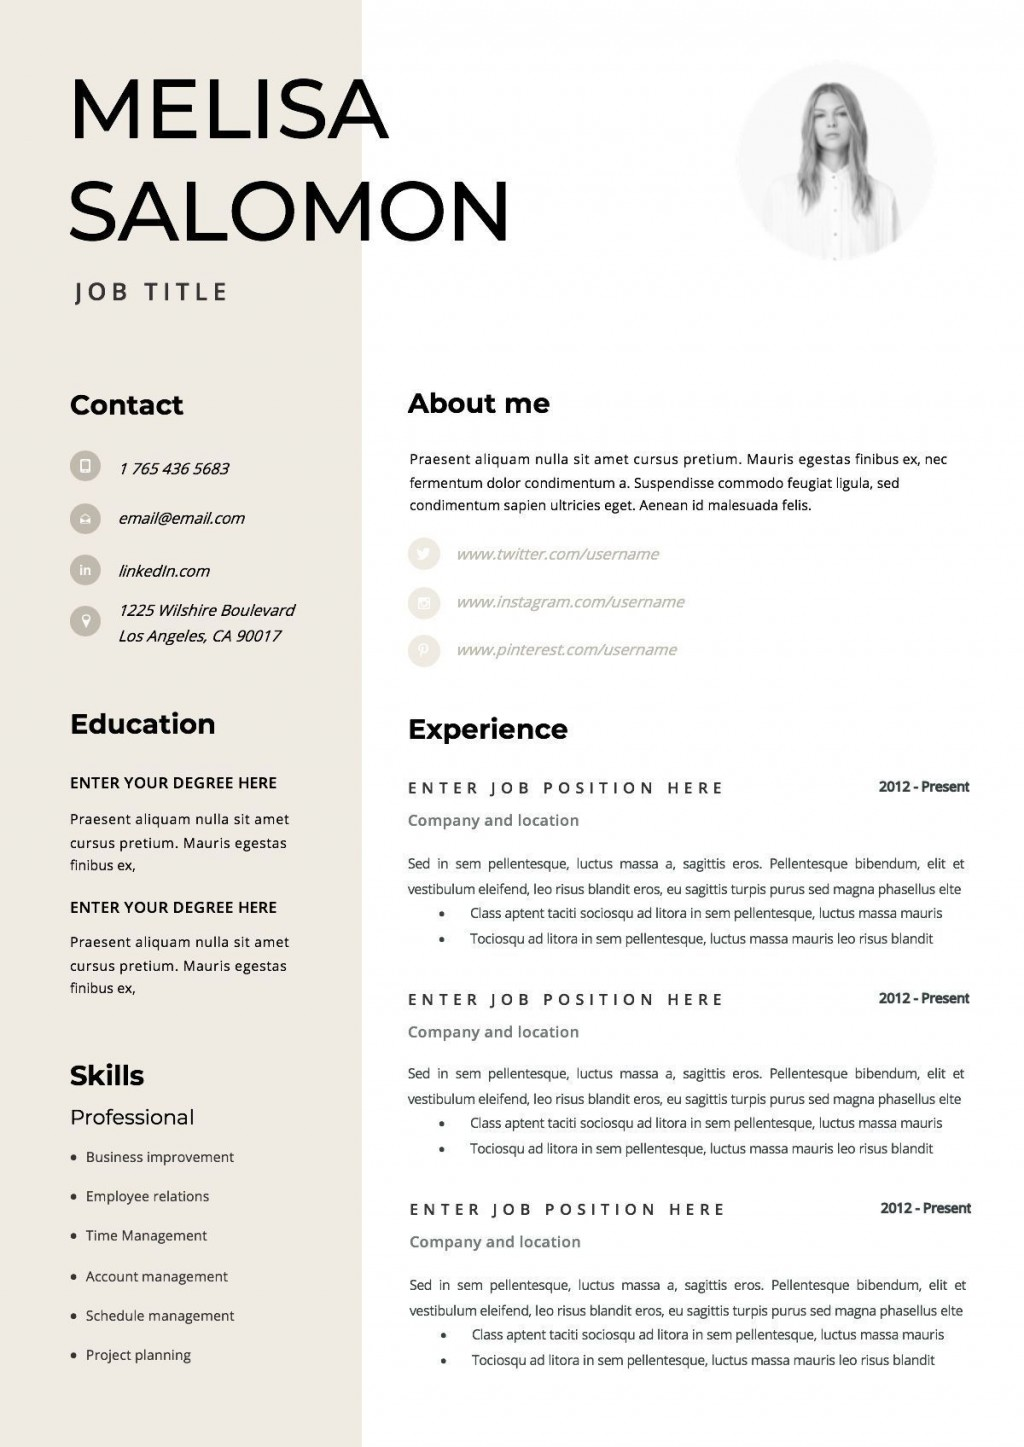 002 Unusual Teacher Resume Template Free Photo  Cv Word Download Editable Format DocLarge